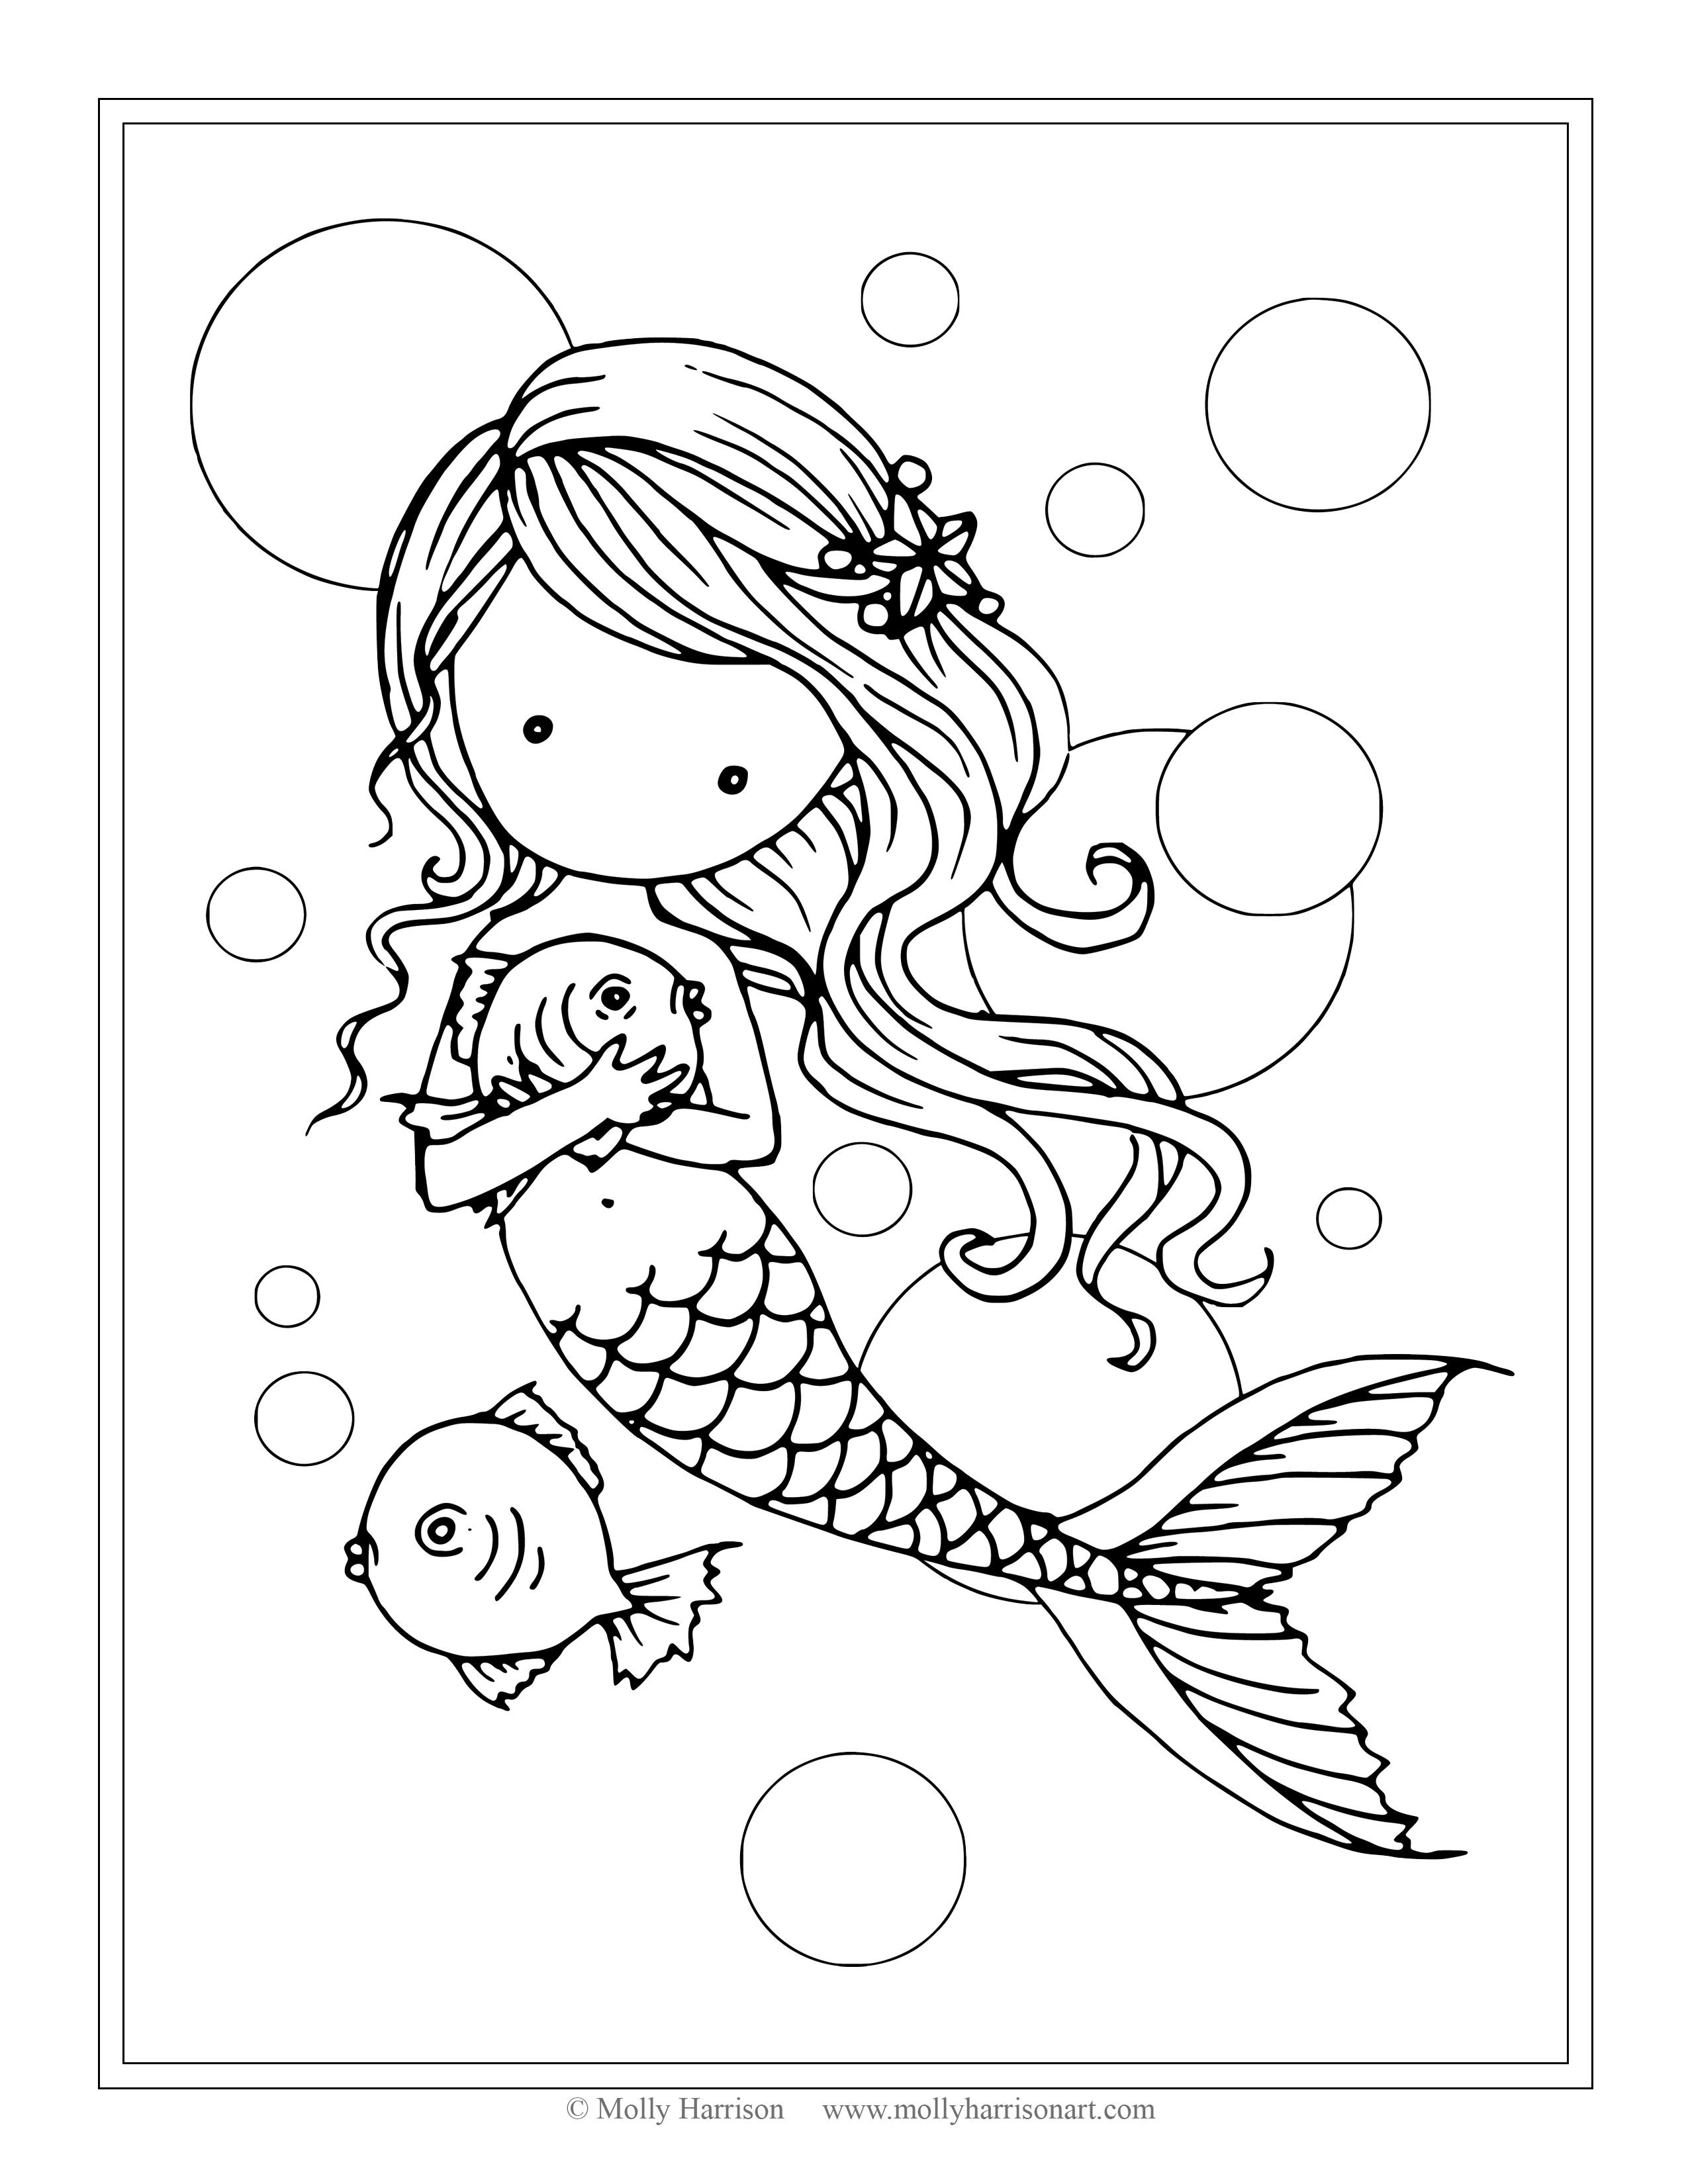 Free Mermaid With Fish Coloring Page By Molly Harrison